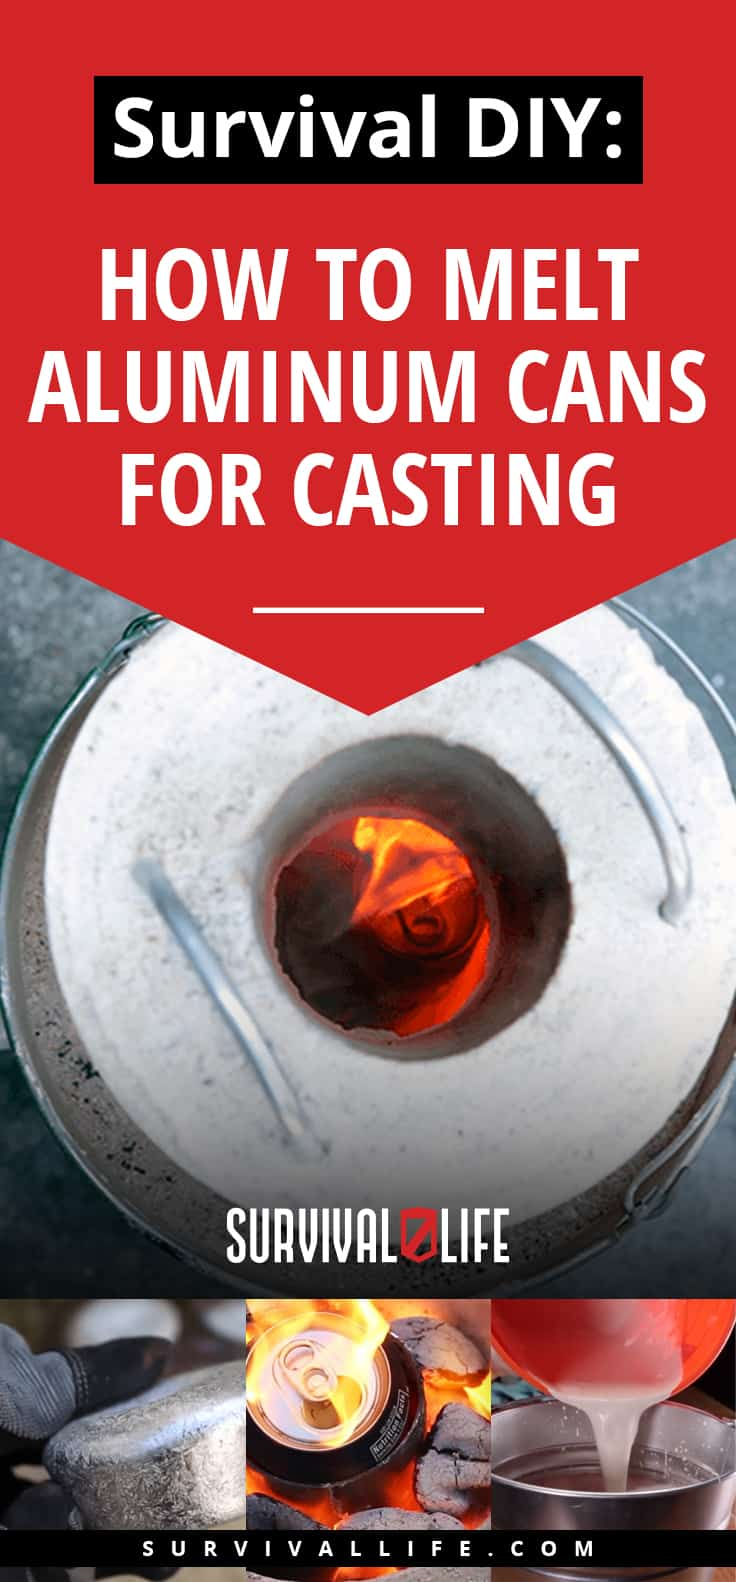 Survival DIY: How To Melt Aluminum Cans For Casting | https://survivallife.com/how-to-melt-aluminum-cans/